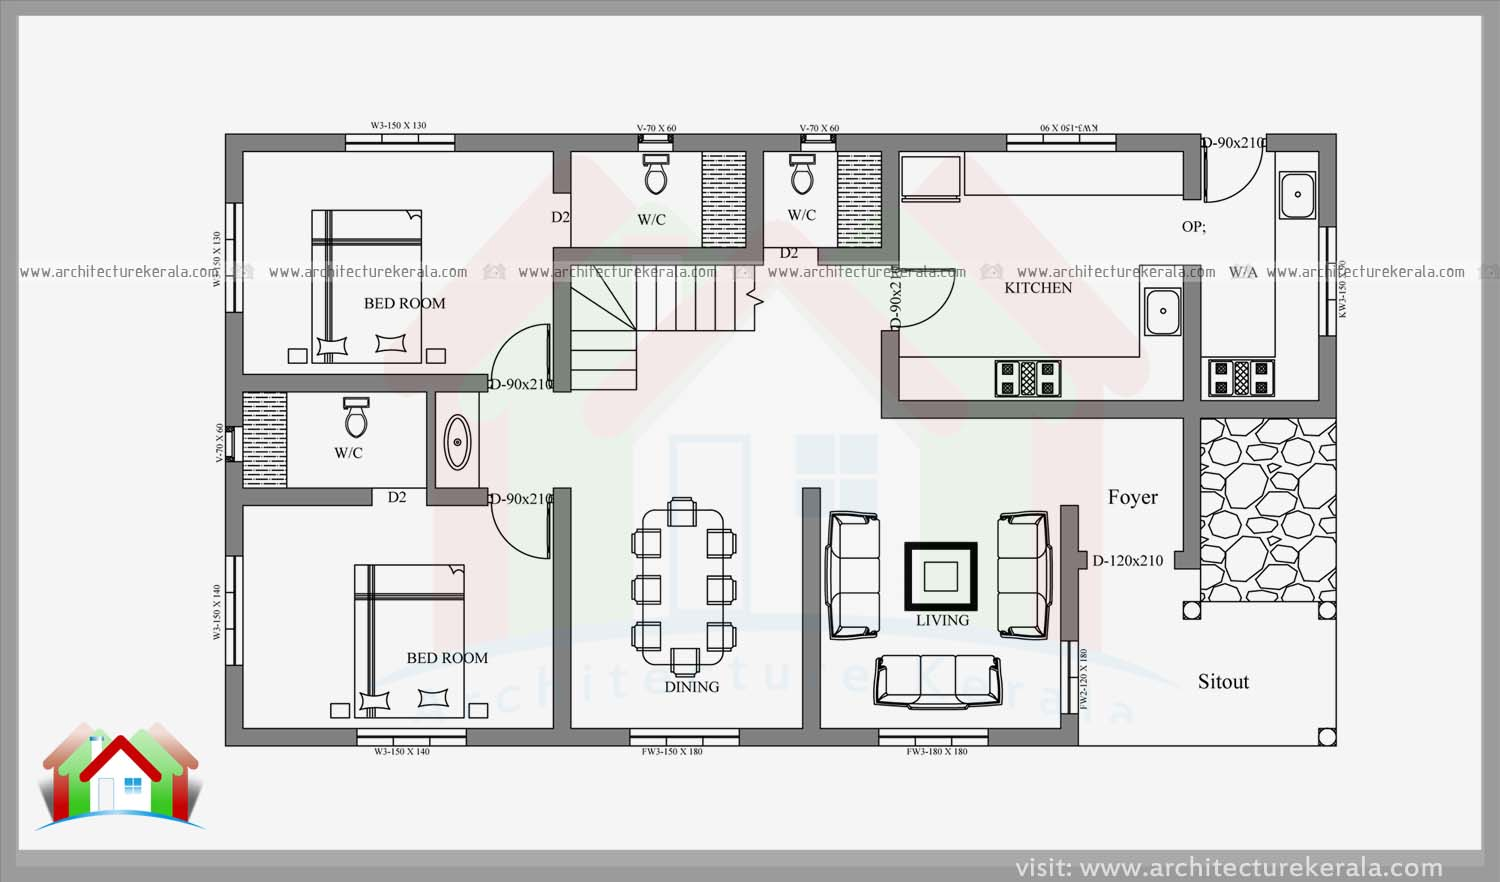 double storied four bedroom house plan and elevation On double bedroom house plan